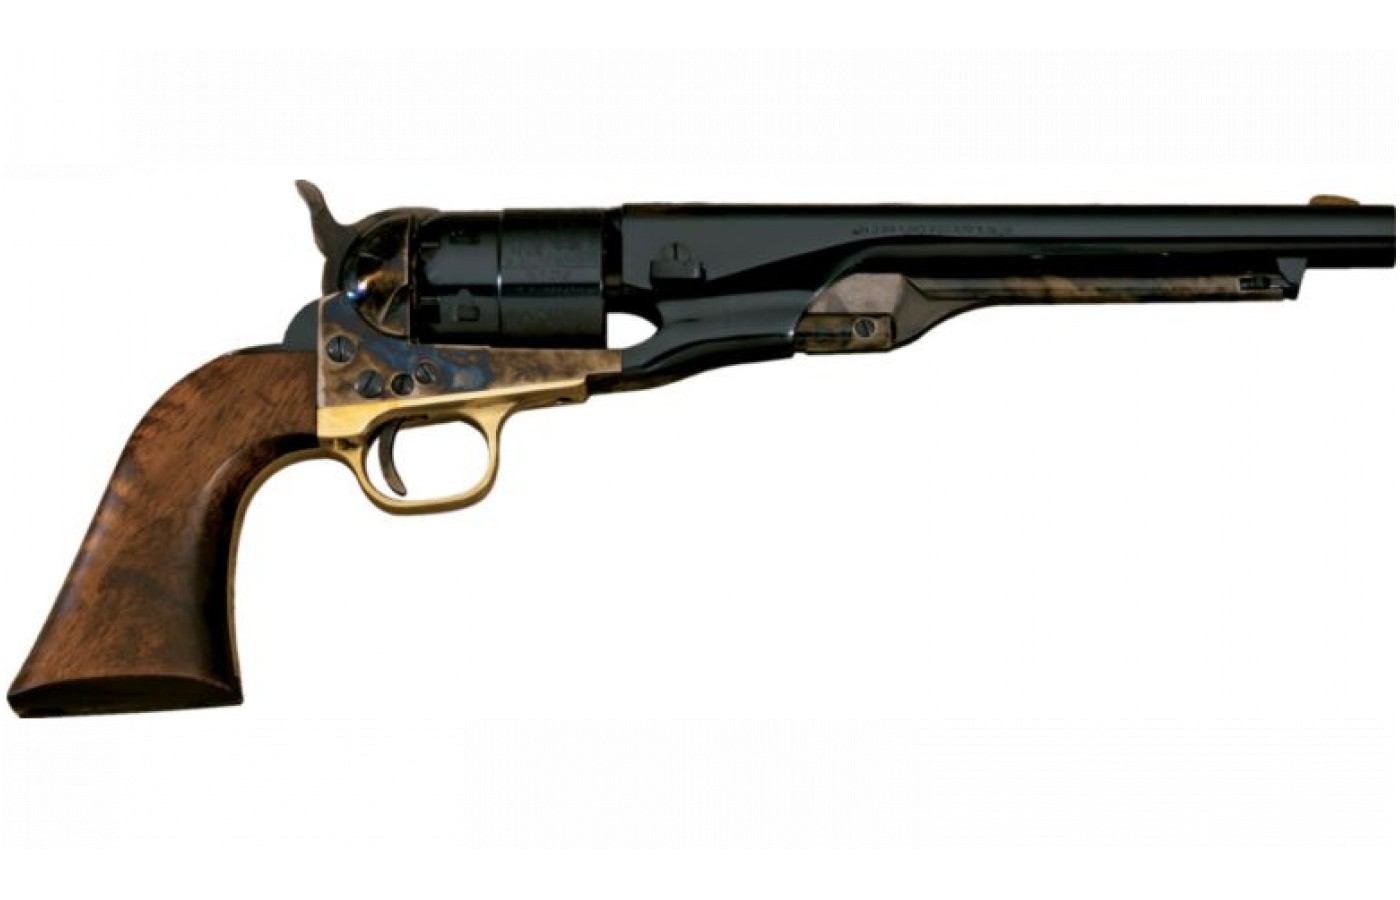 Replicas of this iconic firearm are available today